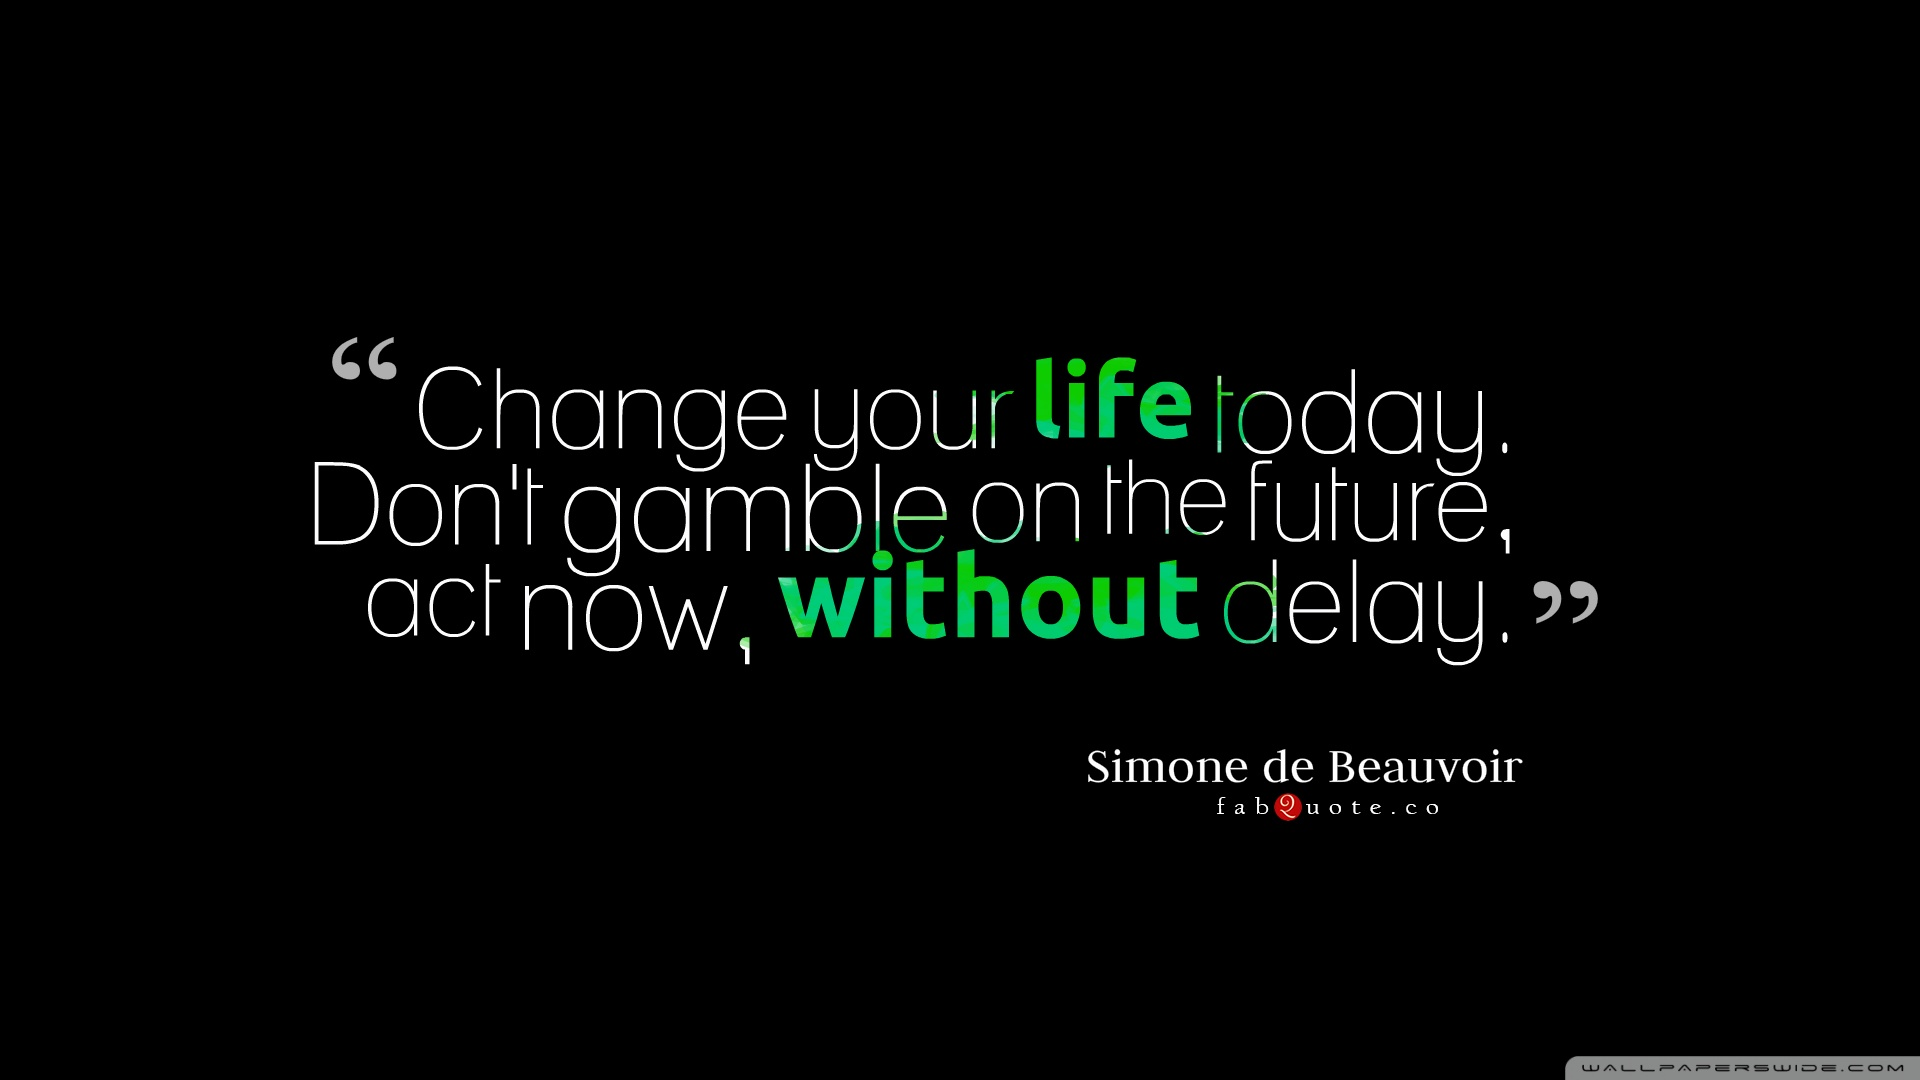 Change Your Life Today Quote 4K HD Desktop Wallpaper for 4K 1920x1080